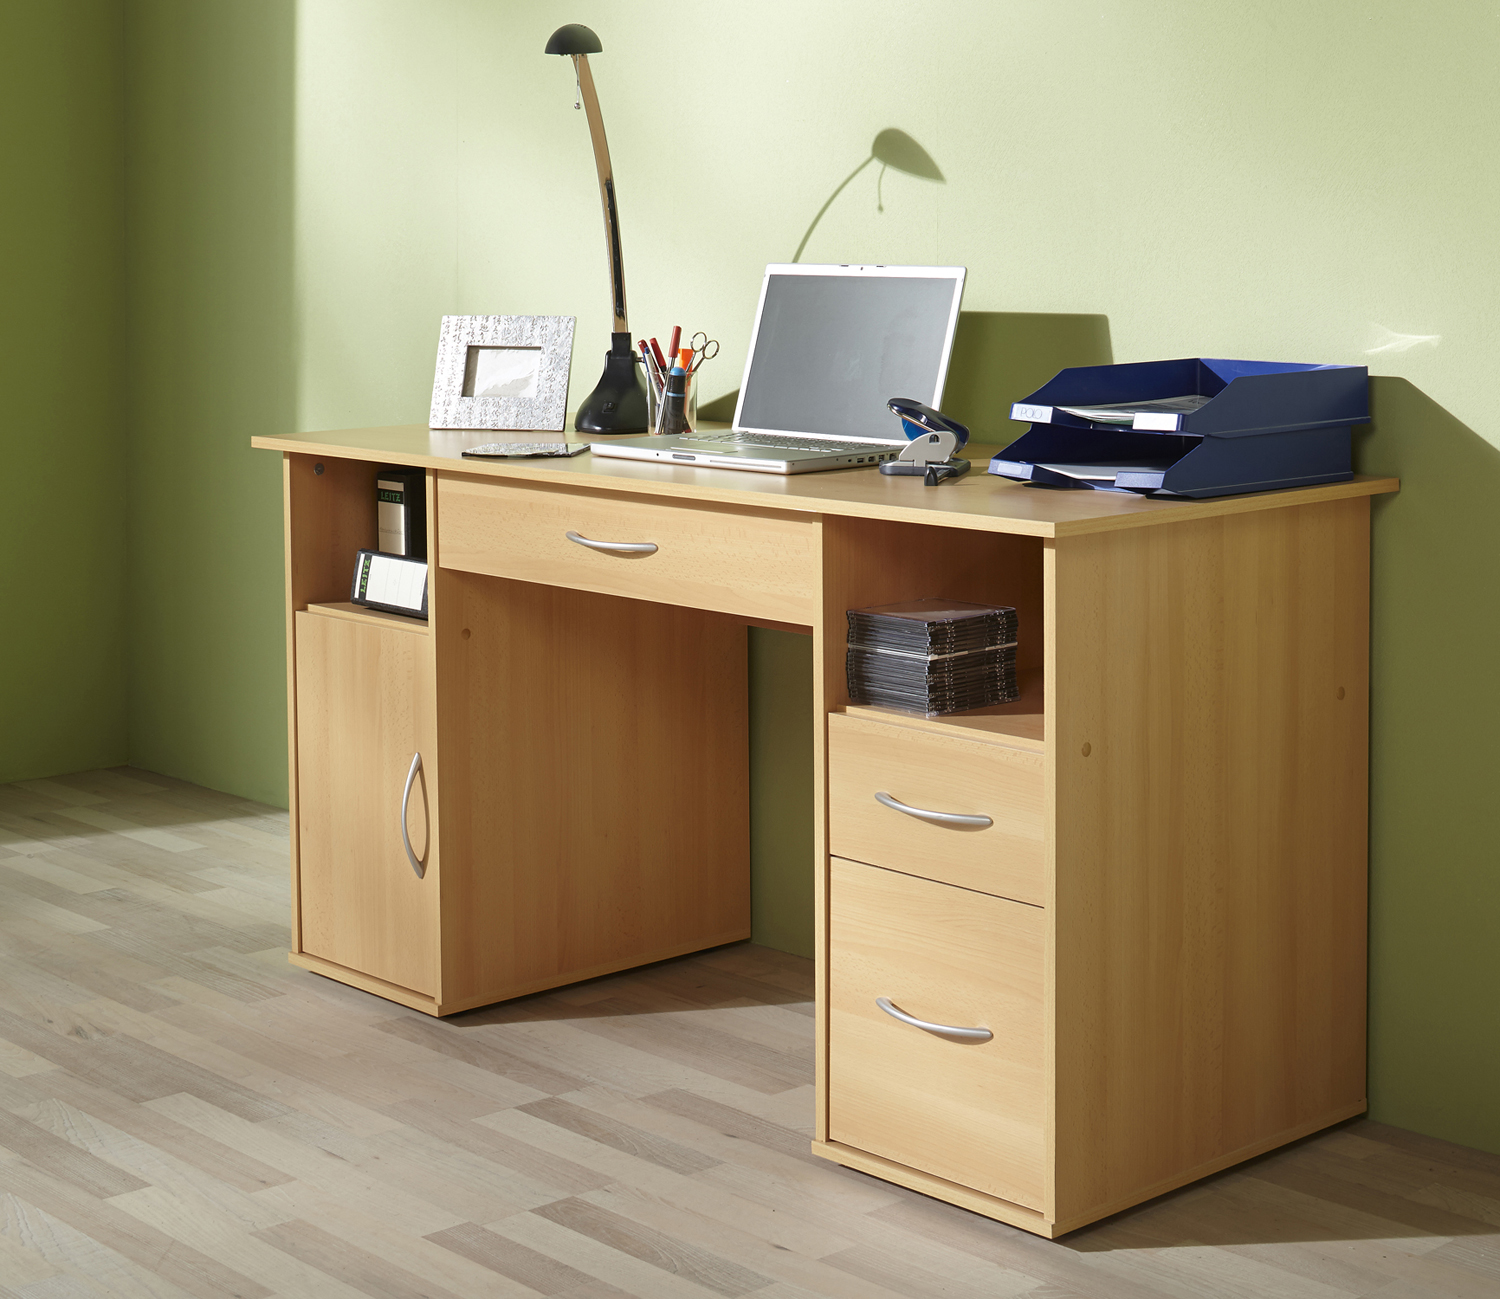 schreibtisch workstation computertisch tisch mod w033. Black Bedroom Furniture Sets. Home Design Ideas